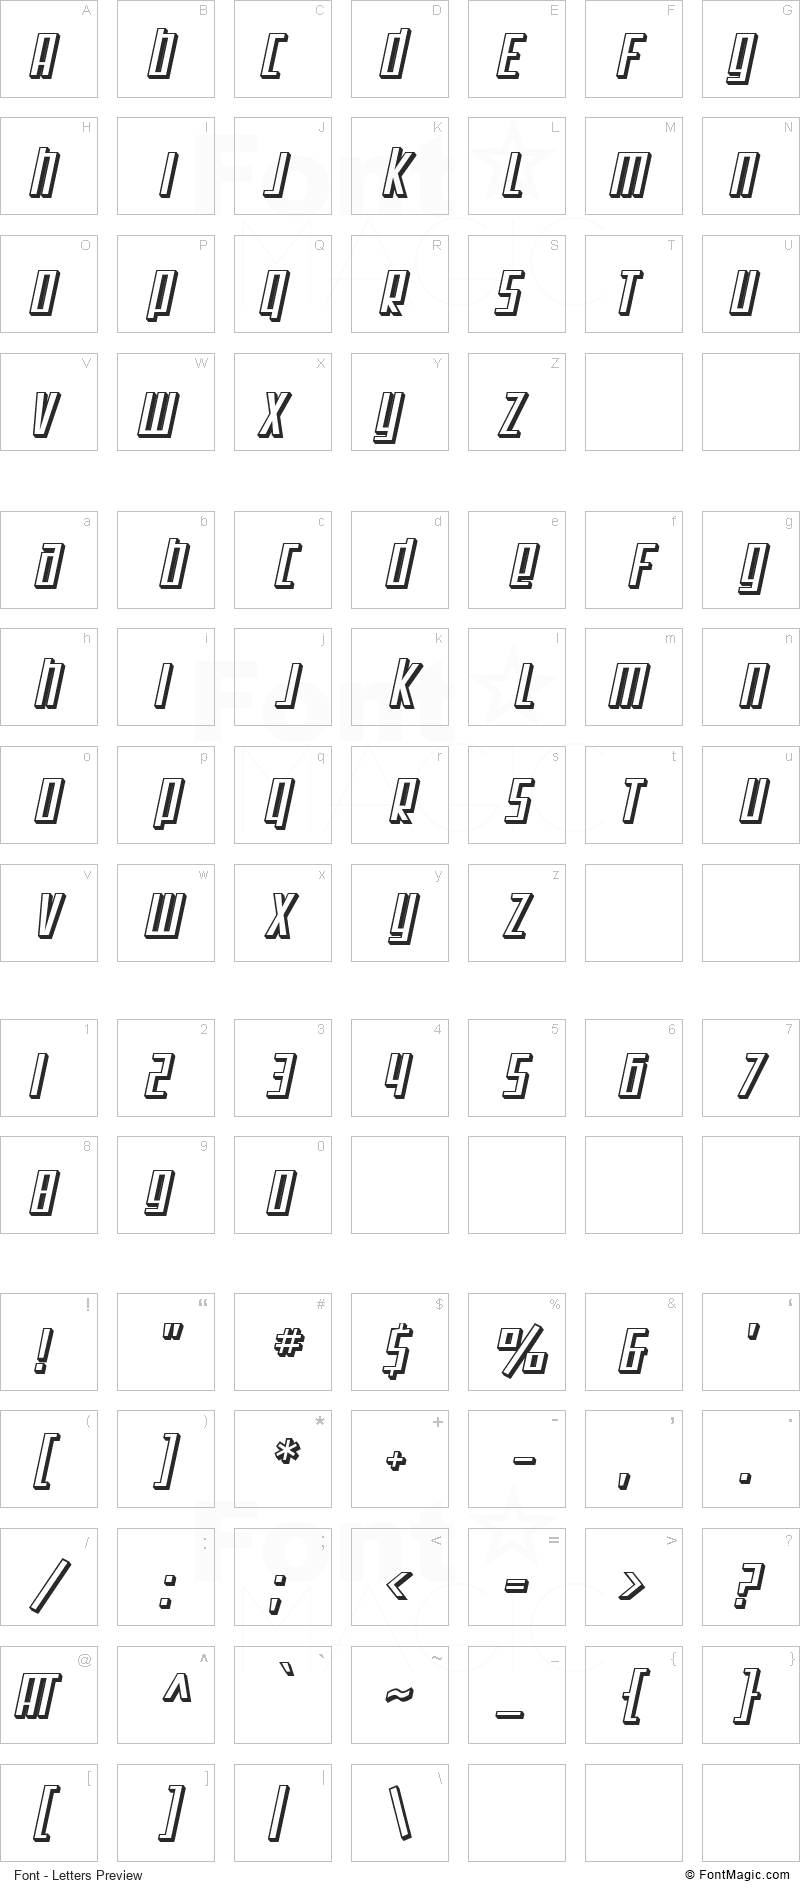 SF Square Root Font - All Latters Preview Chart